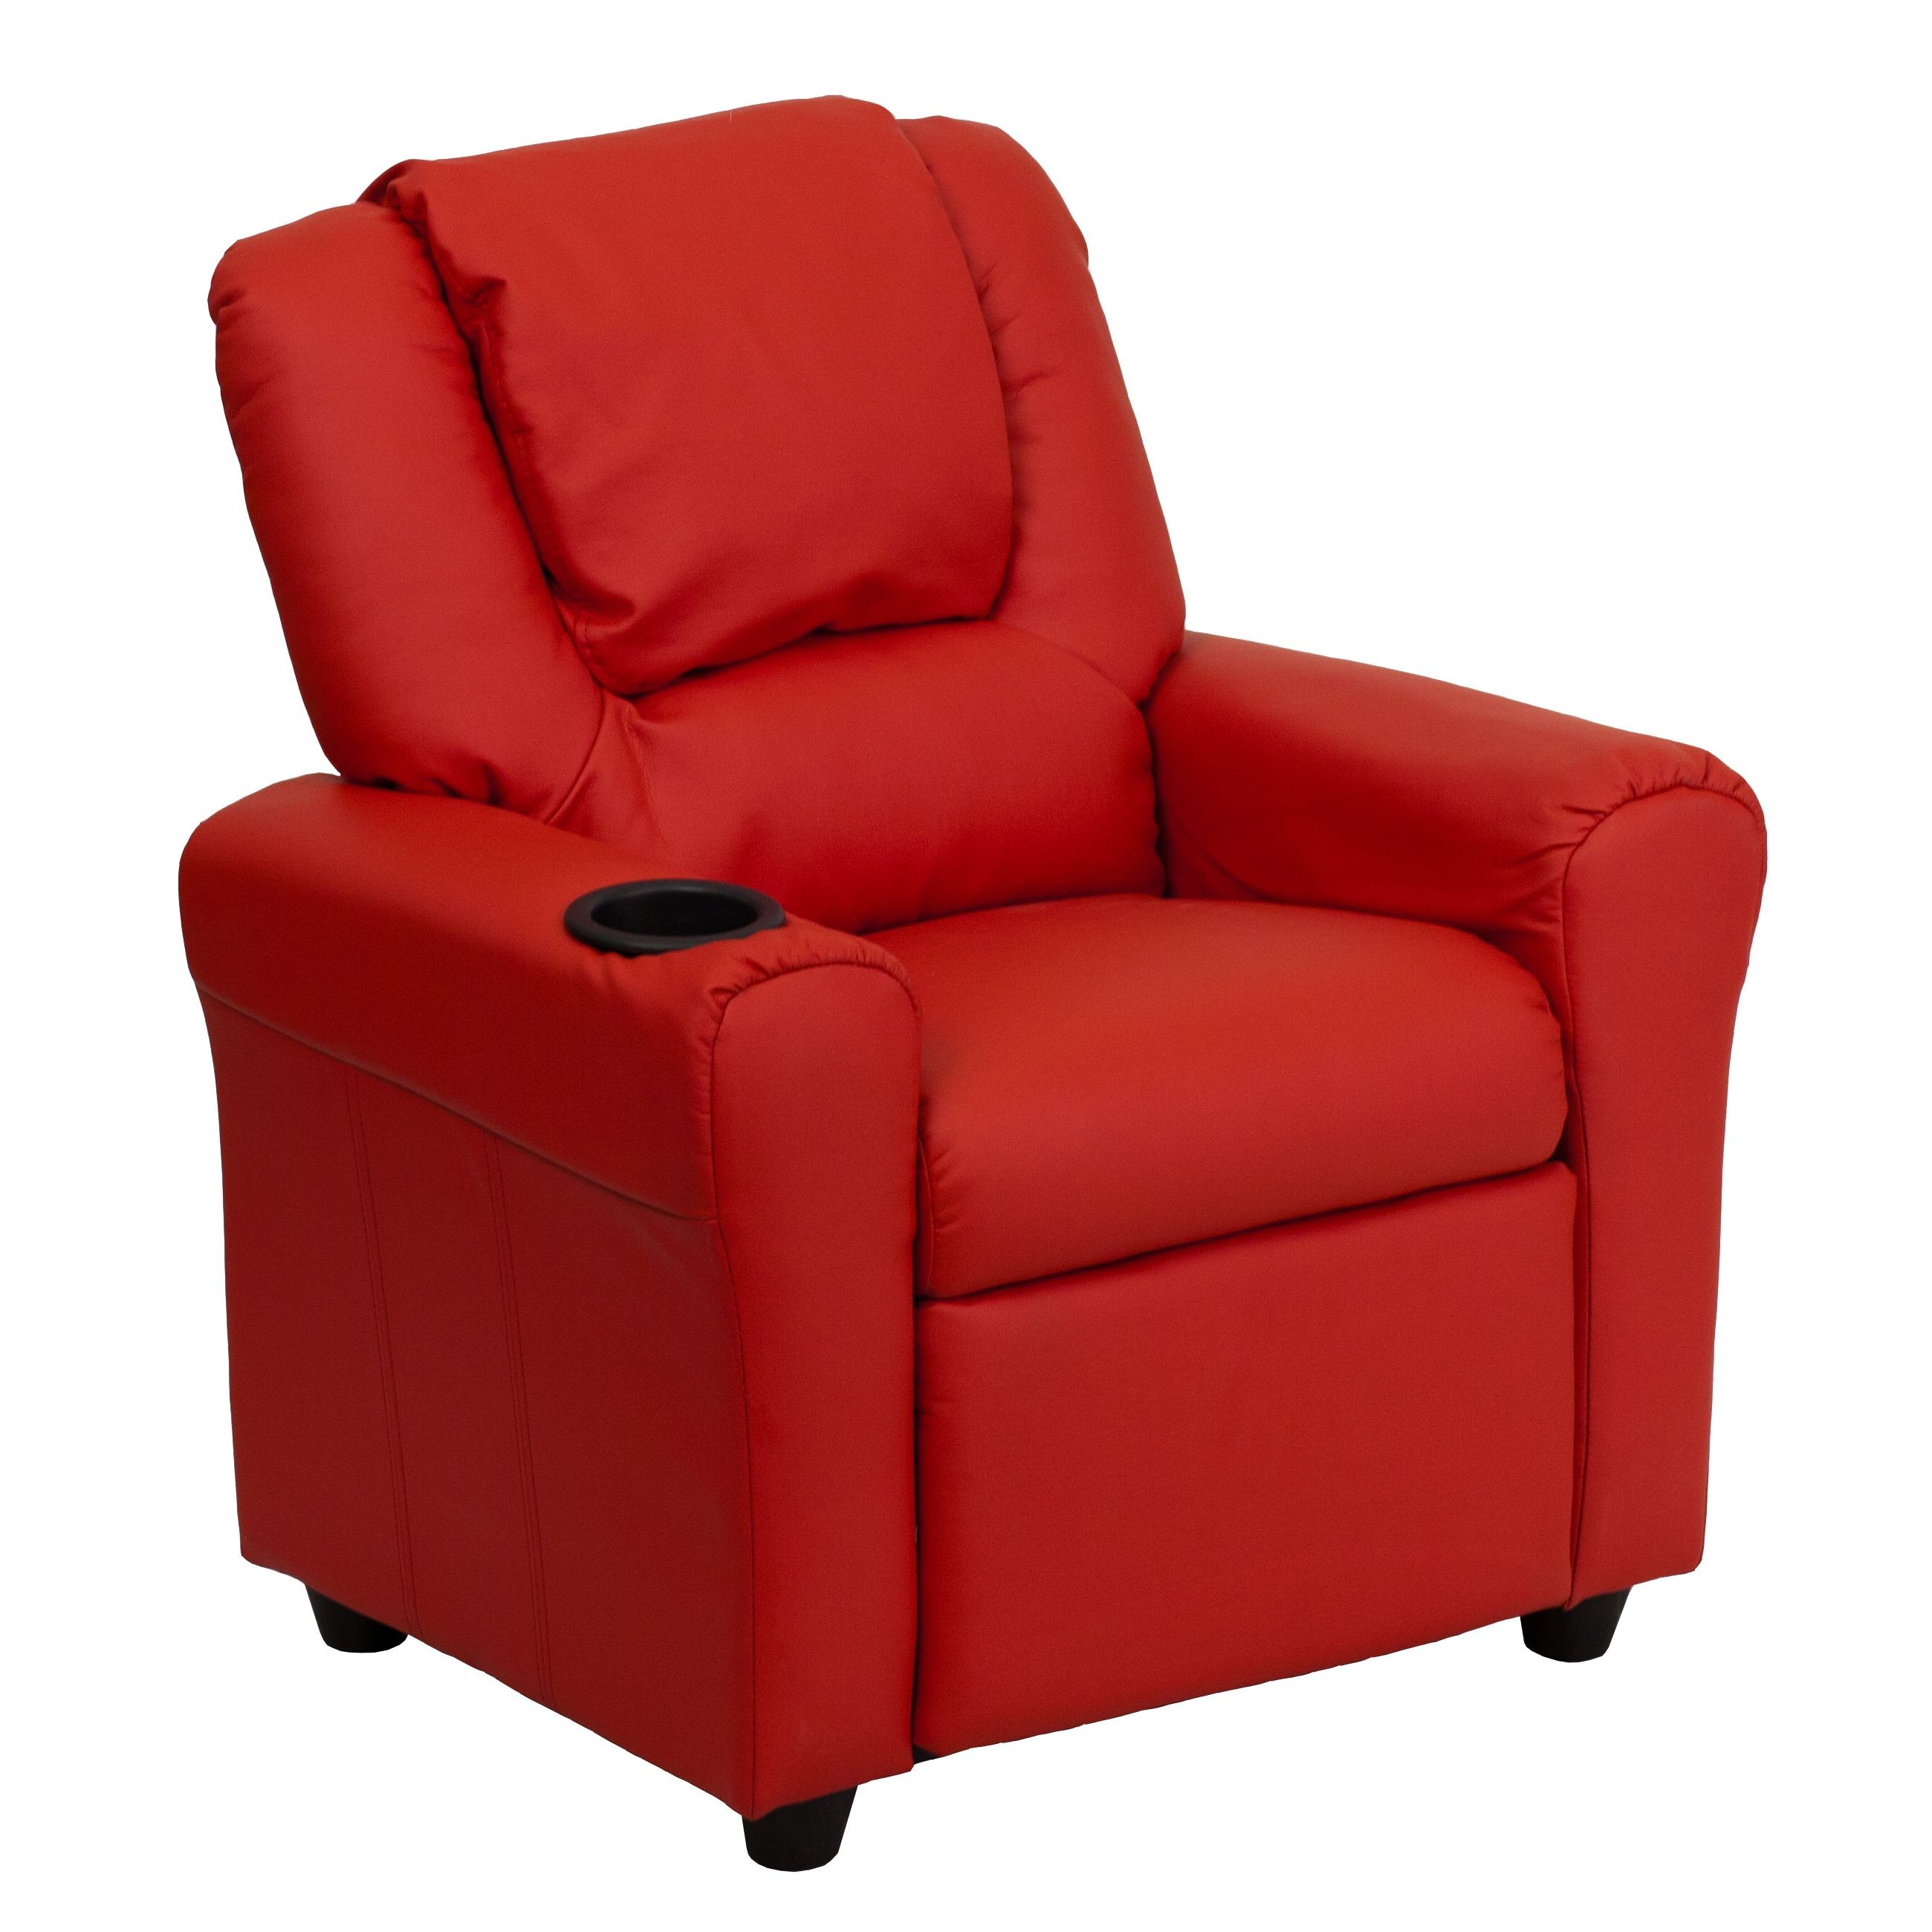 Kids Reclining Chair Flash Furniture Dg Ult Kid Red Gg Contemporary Red Vinyl